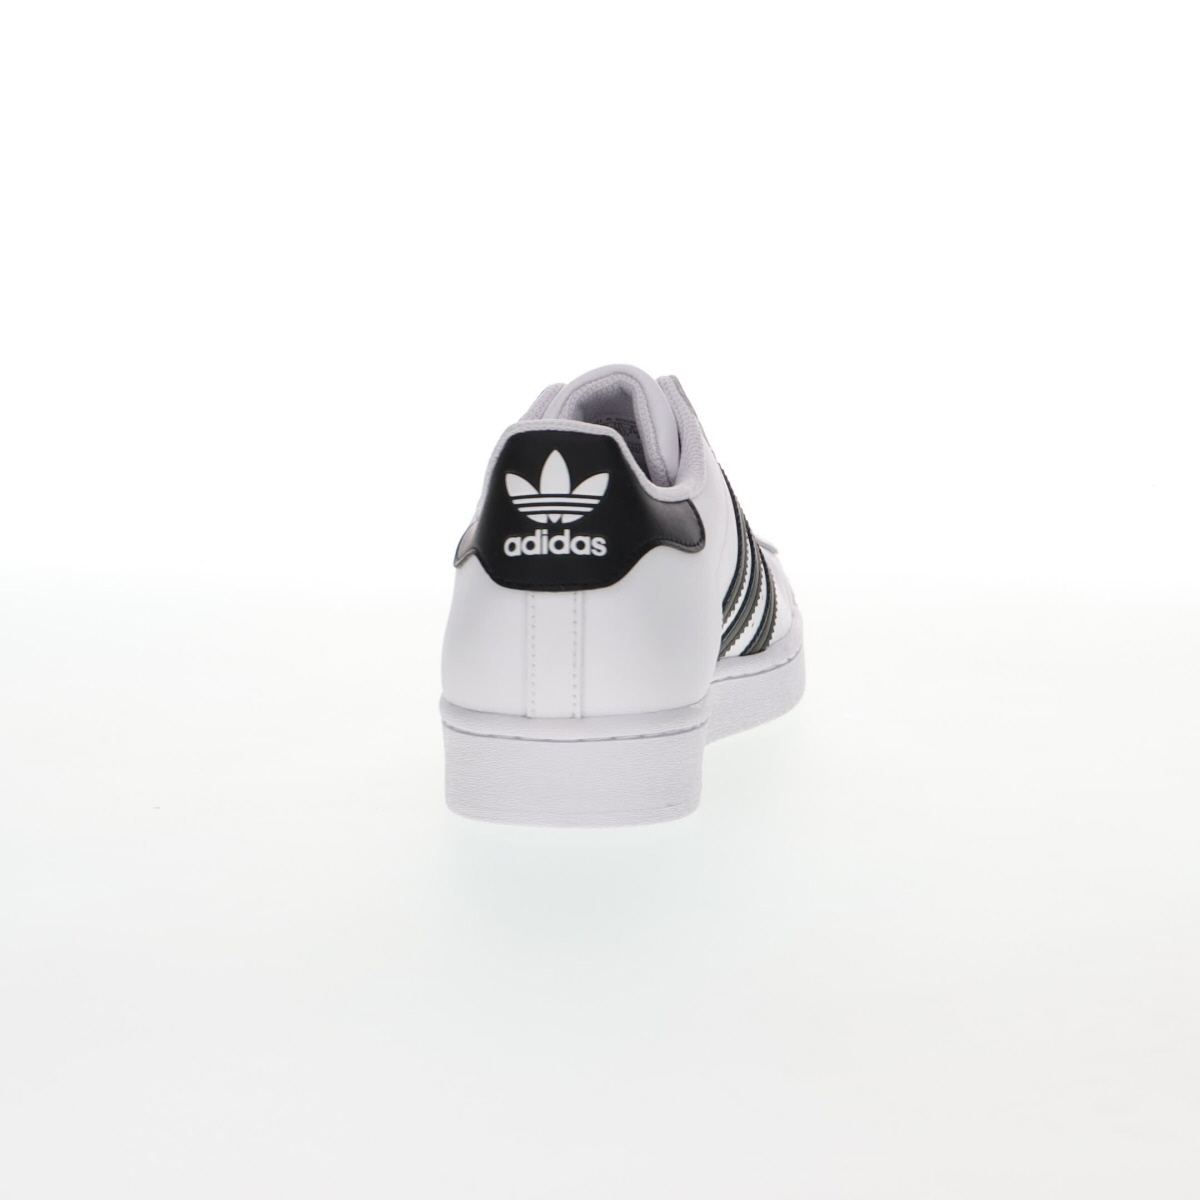 adidas by 8928 pants shoes clearance sale